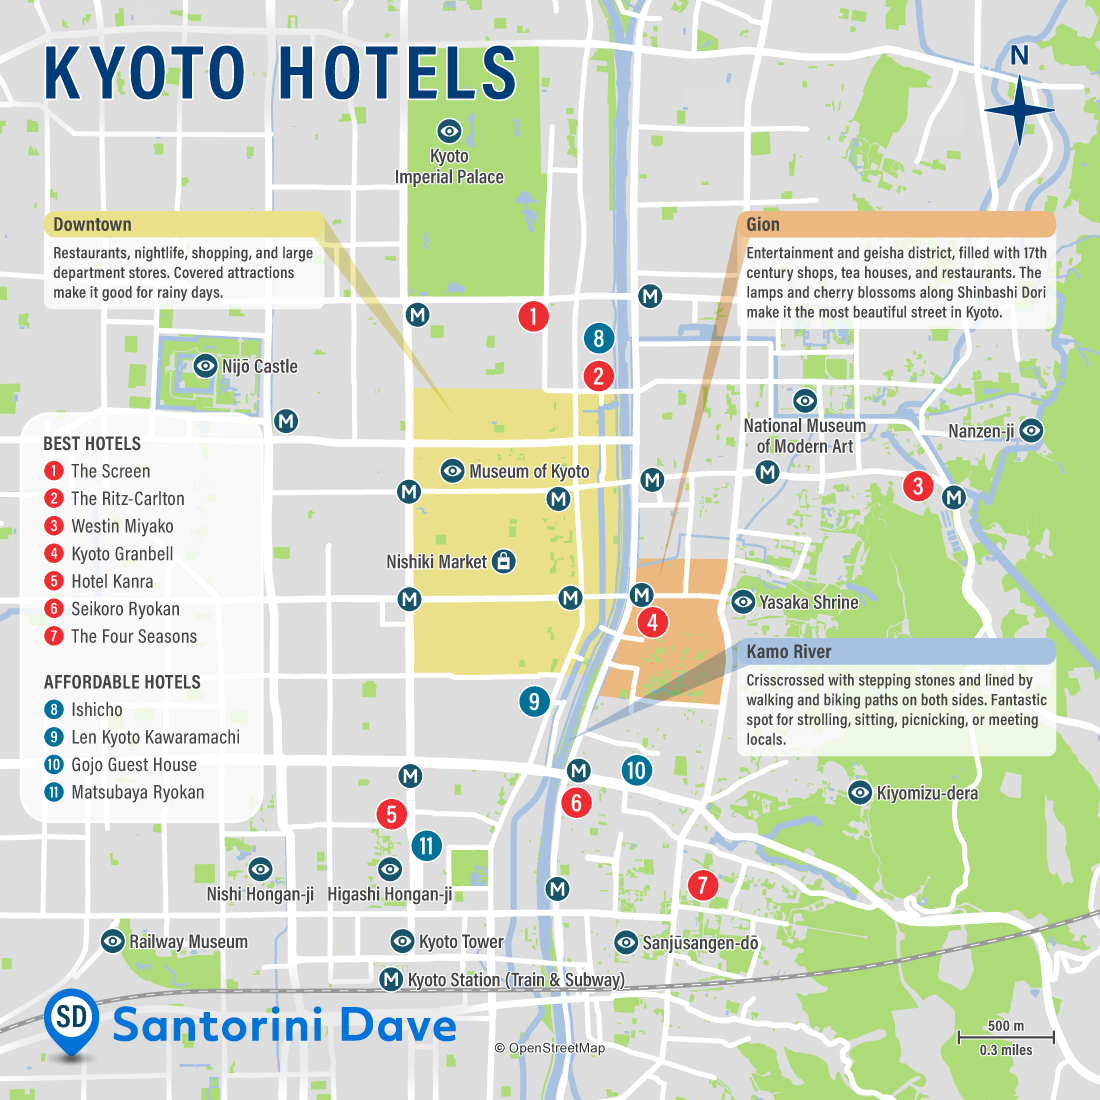 Map of Best Hotels and Neighborhoods in Kyoto, Japan.